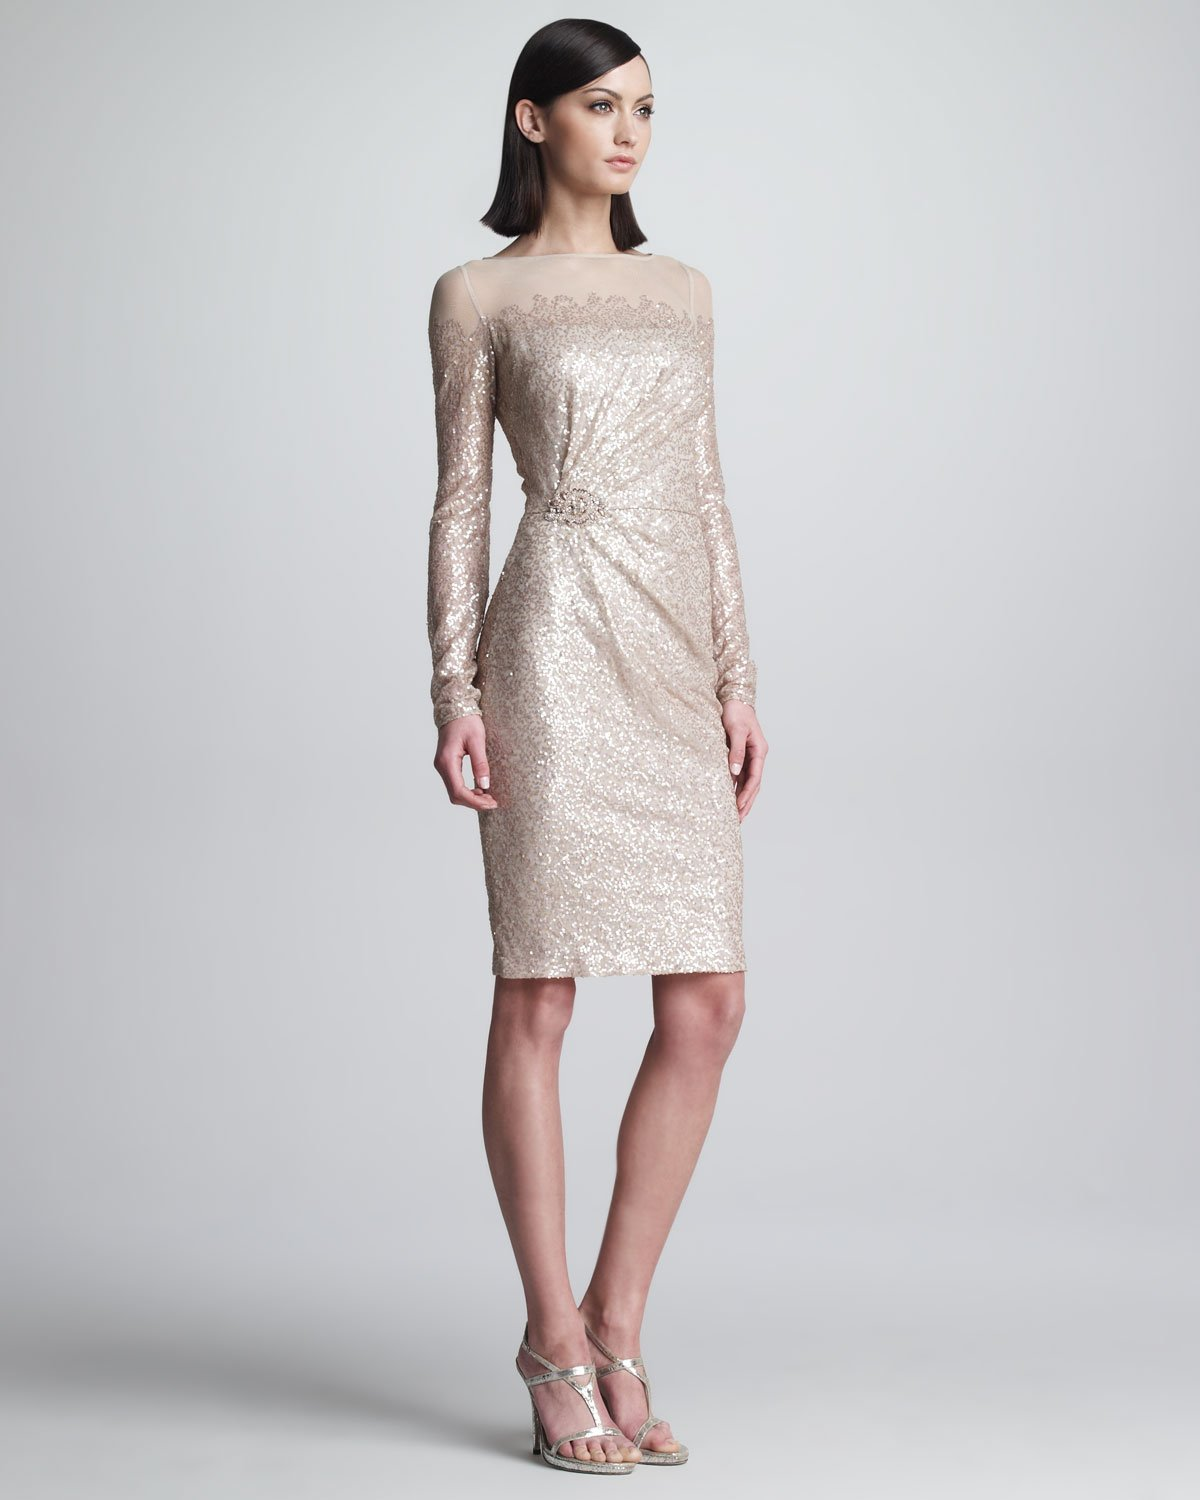 Lyst - David Meister Sequined Longsleeve Cocktail Dress in Natural